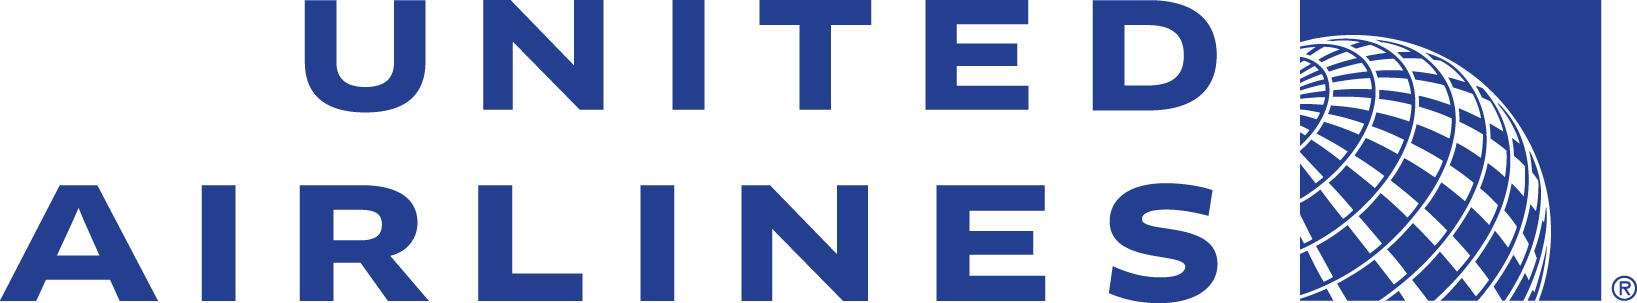 united airlines logo.png